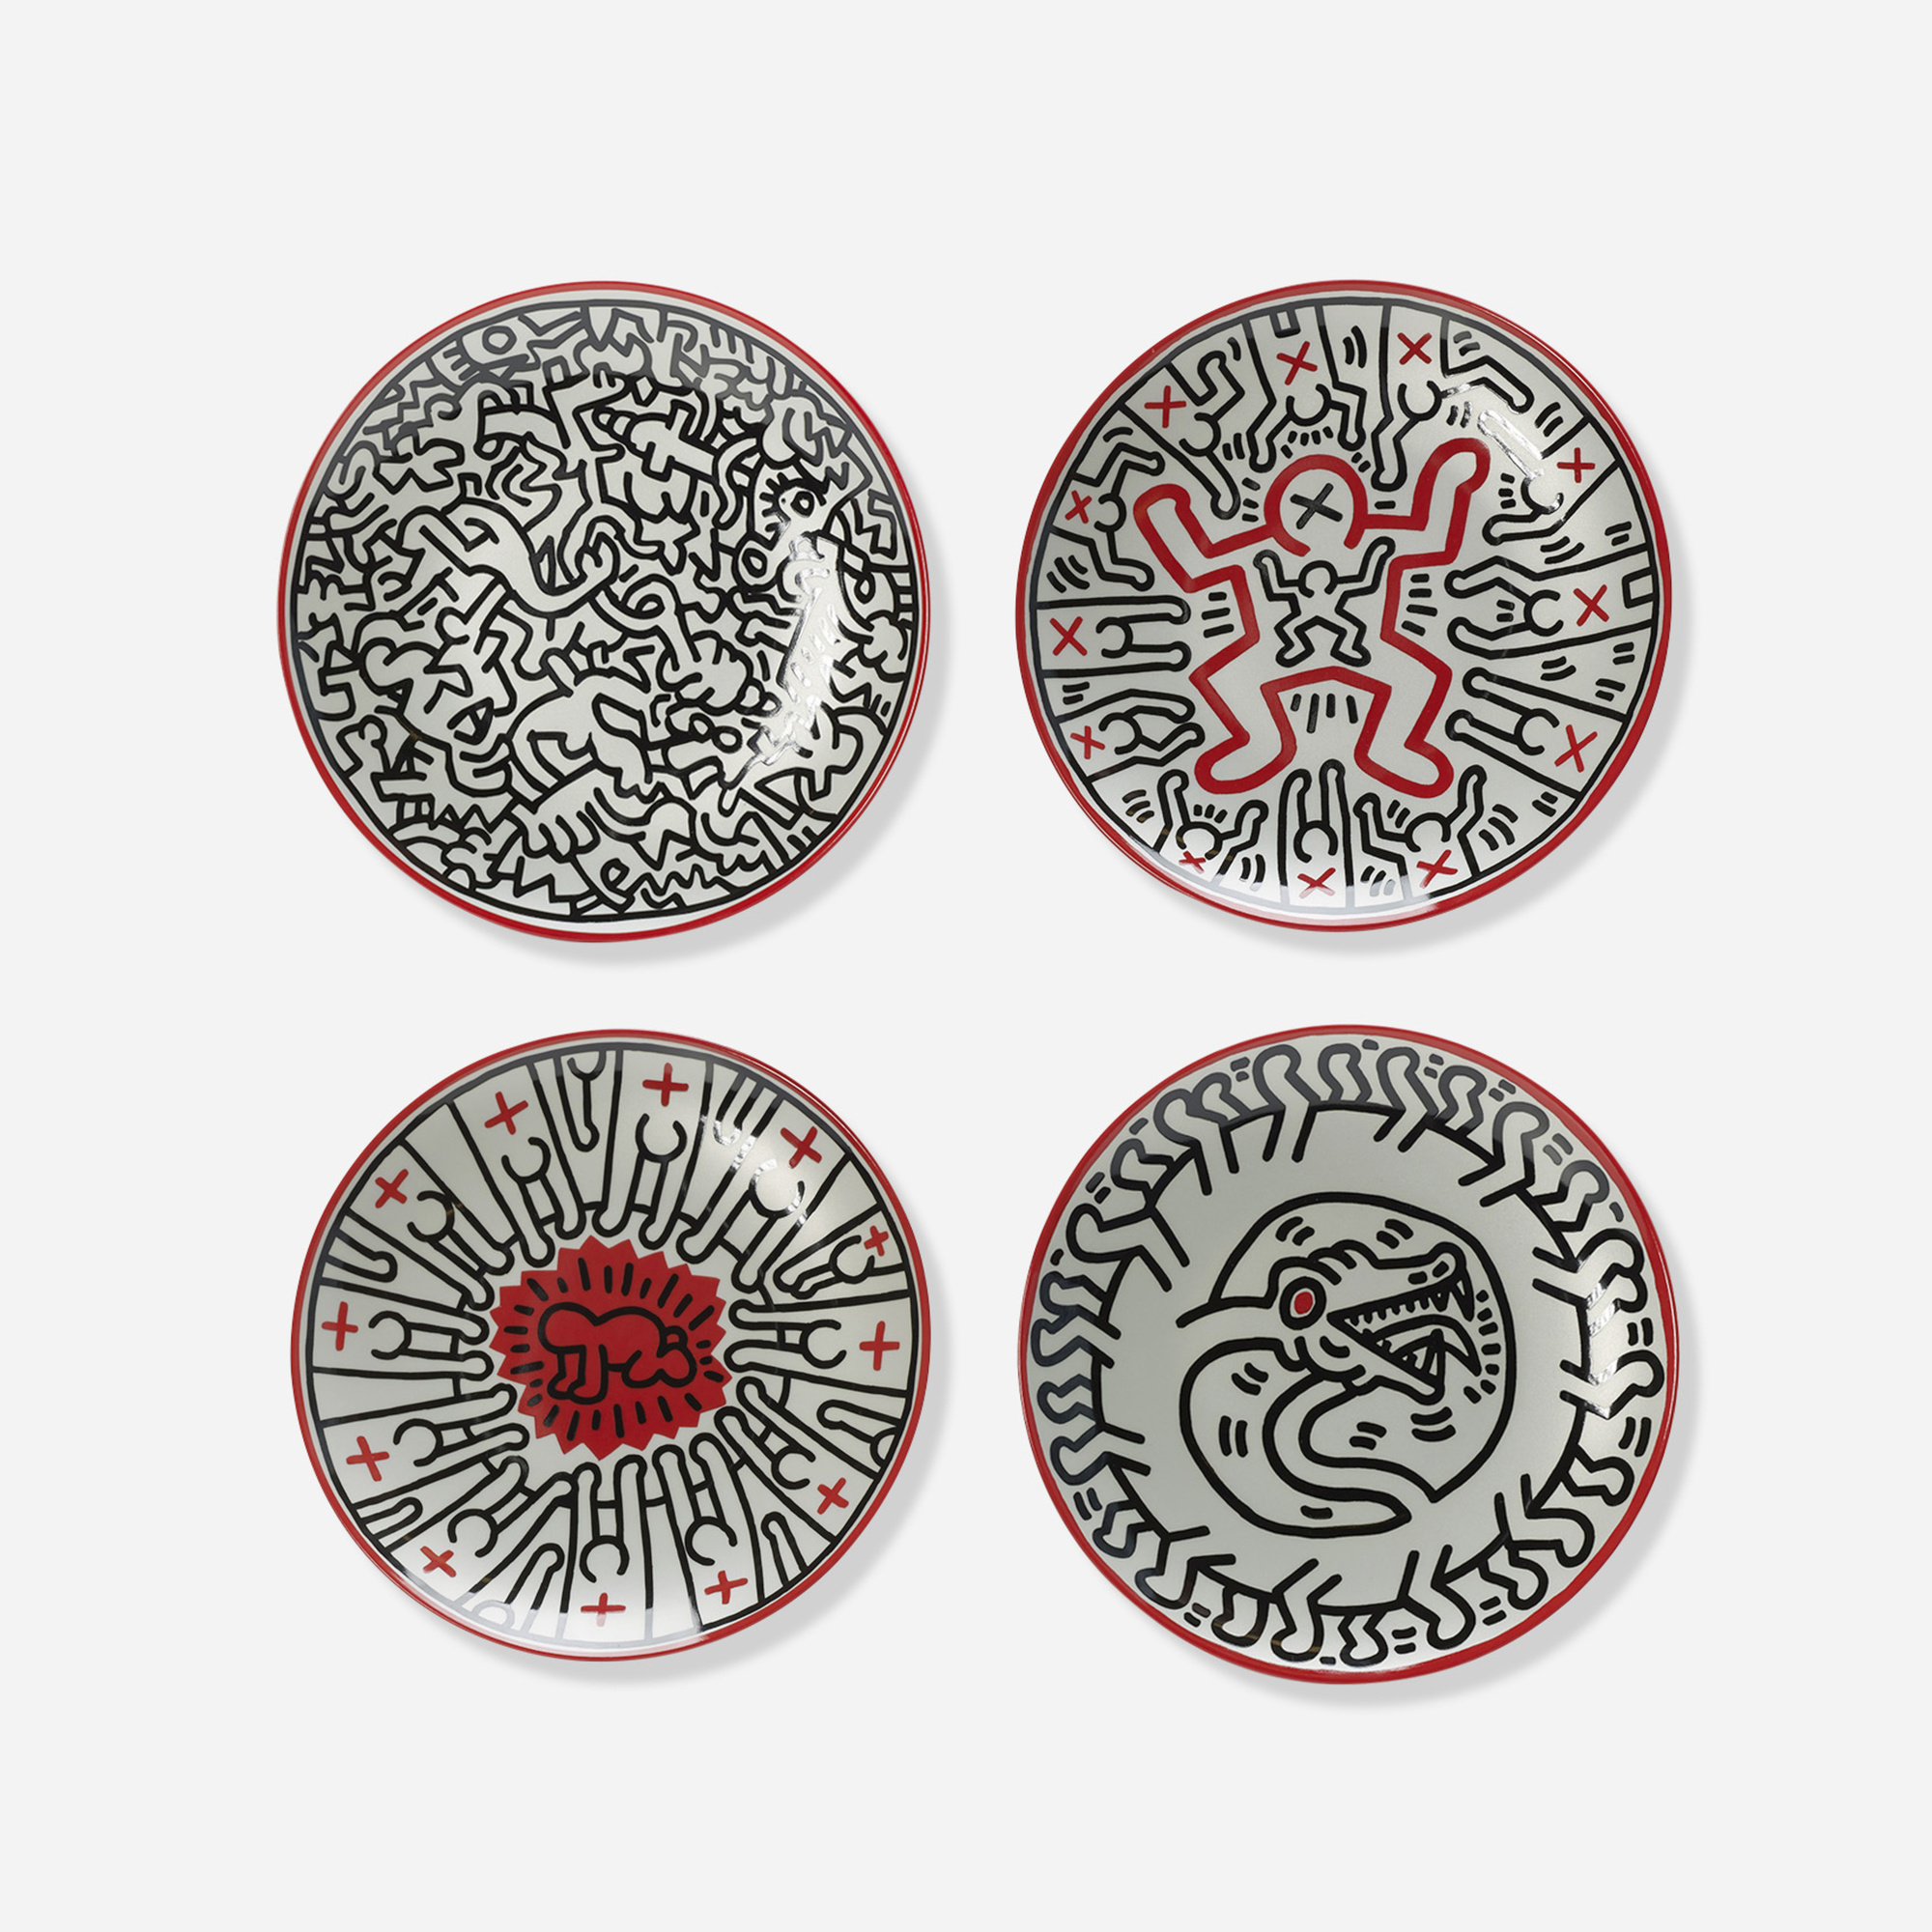 317: Keith Haring / plates, set of four (1 of 3)